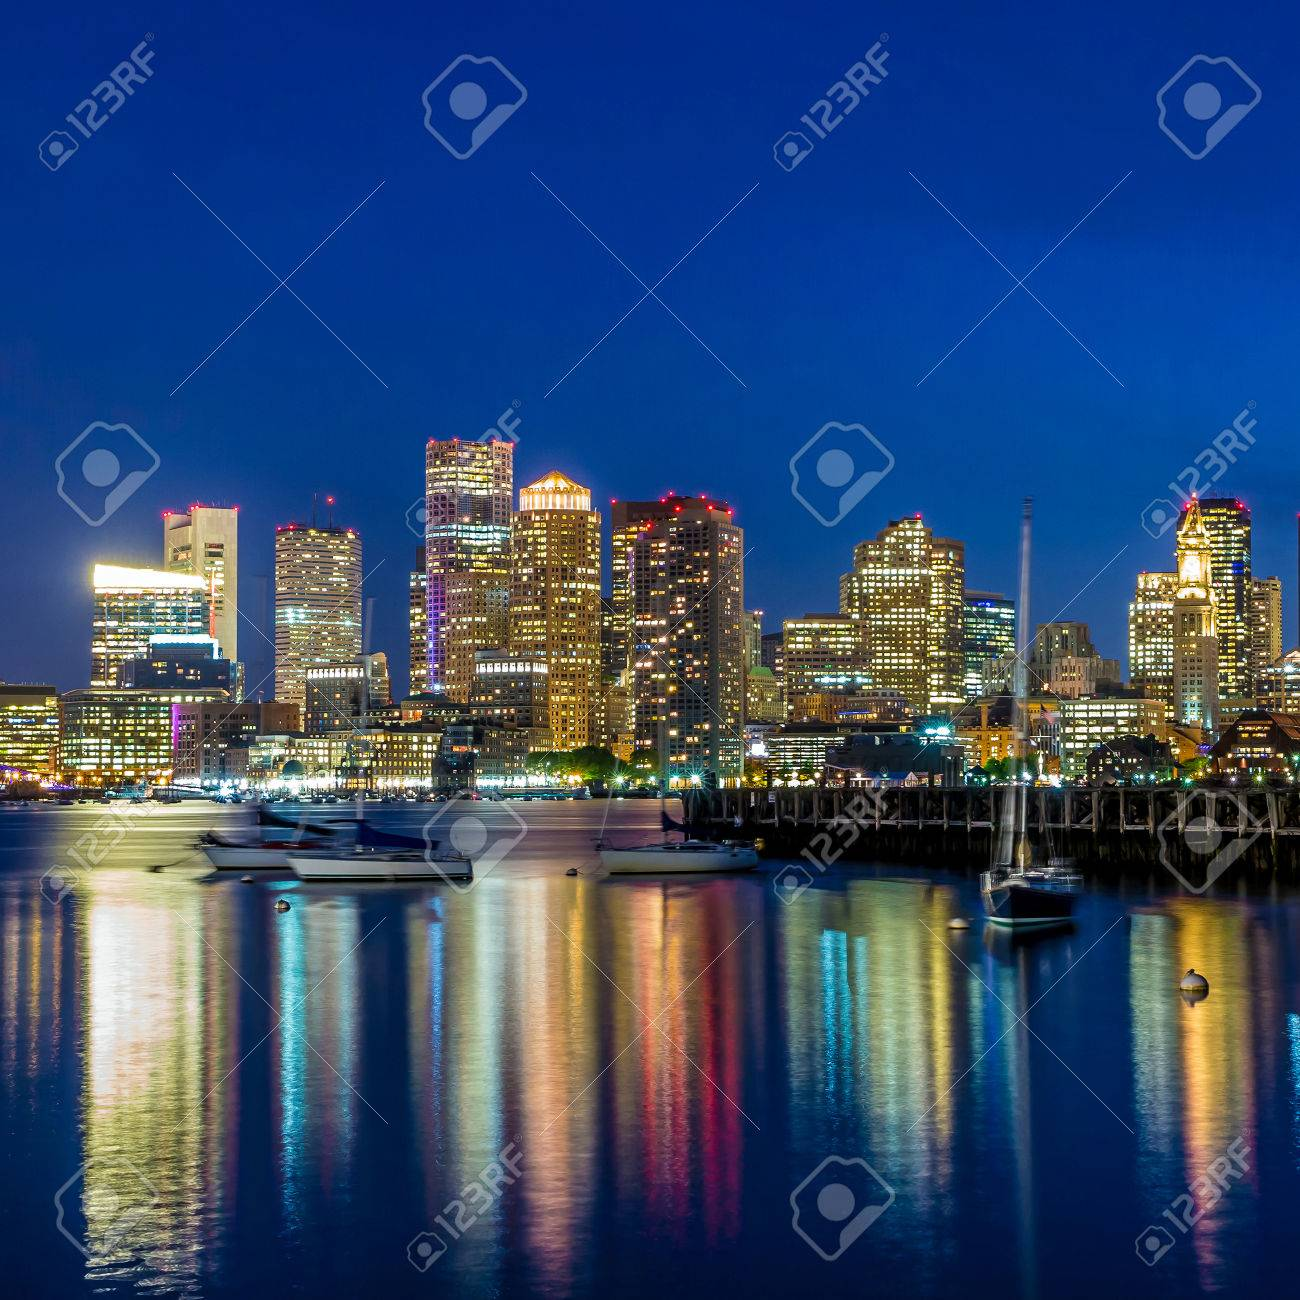 Boston downtown skyline panorama with skyscrapers over water at twilight Stock Photo - 29309289